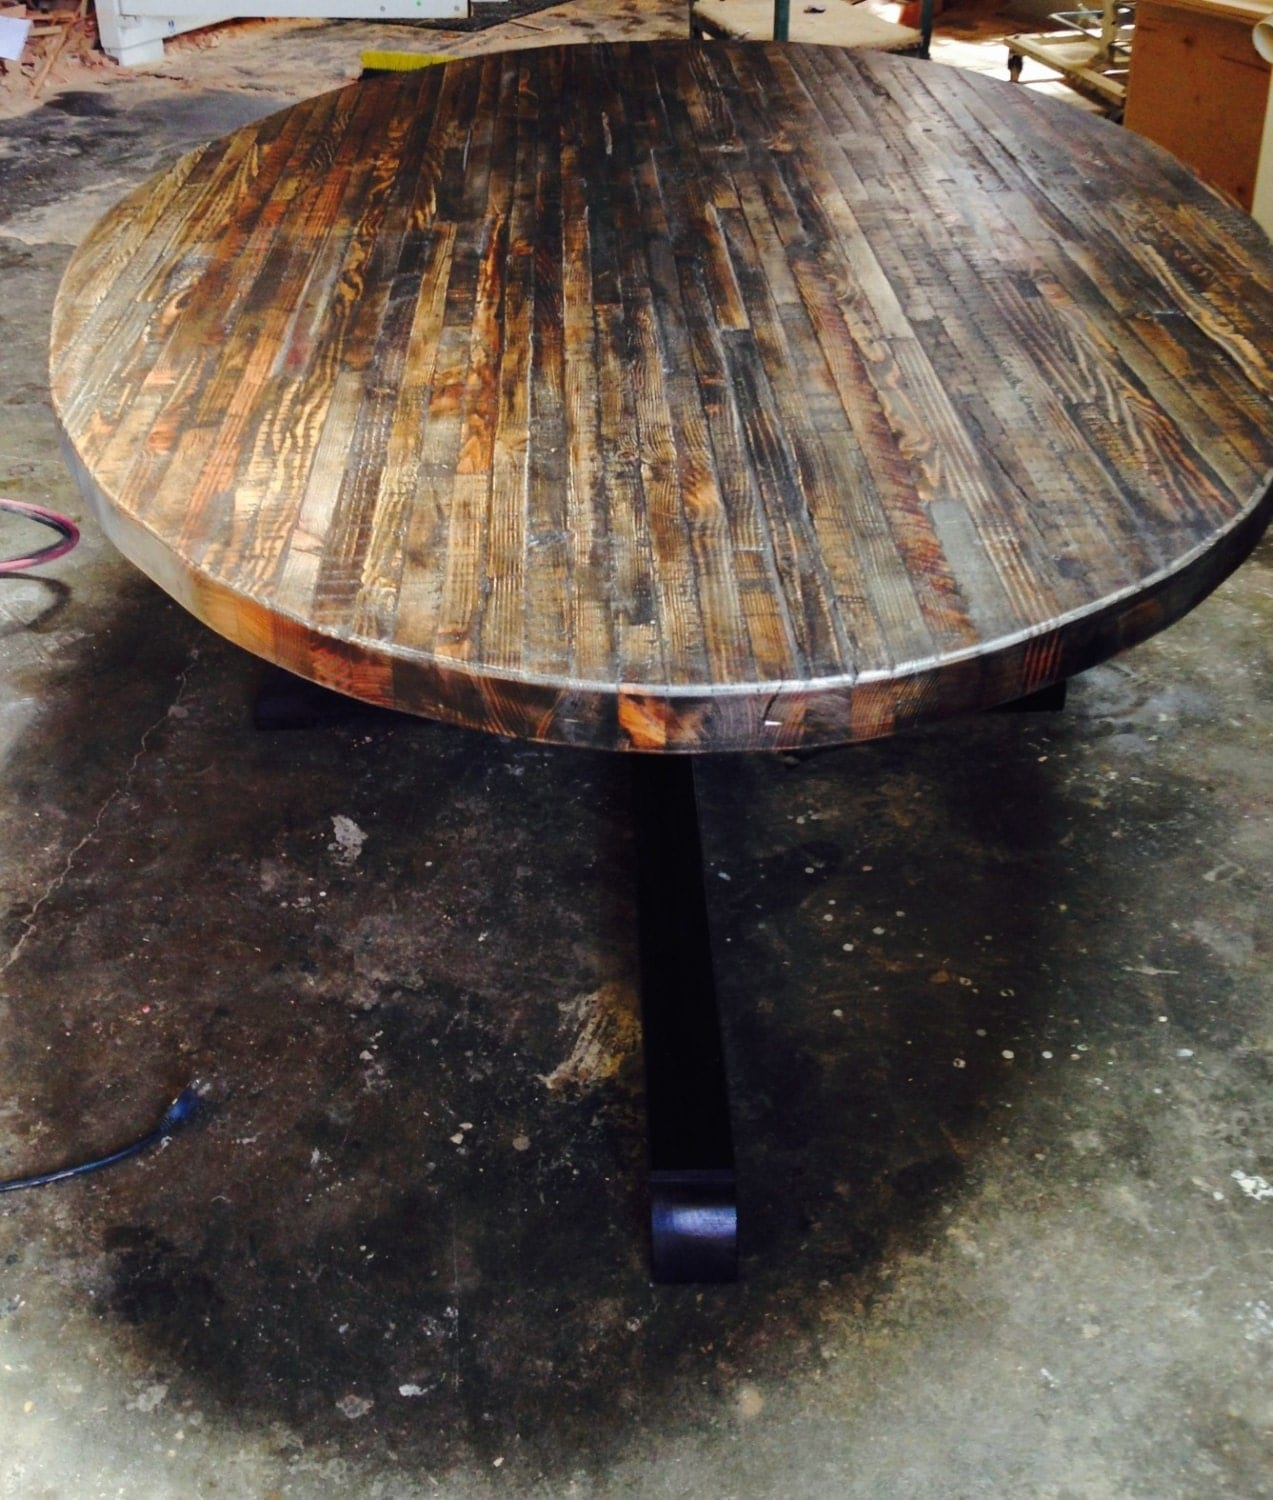 Round butcher block kitchen table - Extra Large Custom Butcher Block Strip Oval Wood Dining Table From Reclaimed Wood